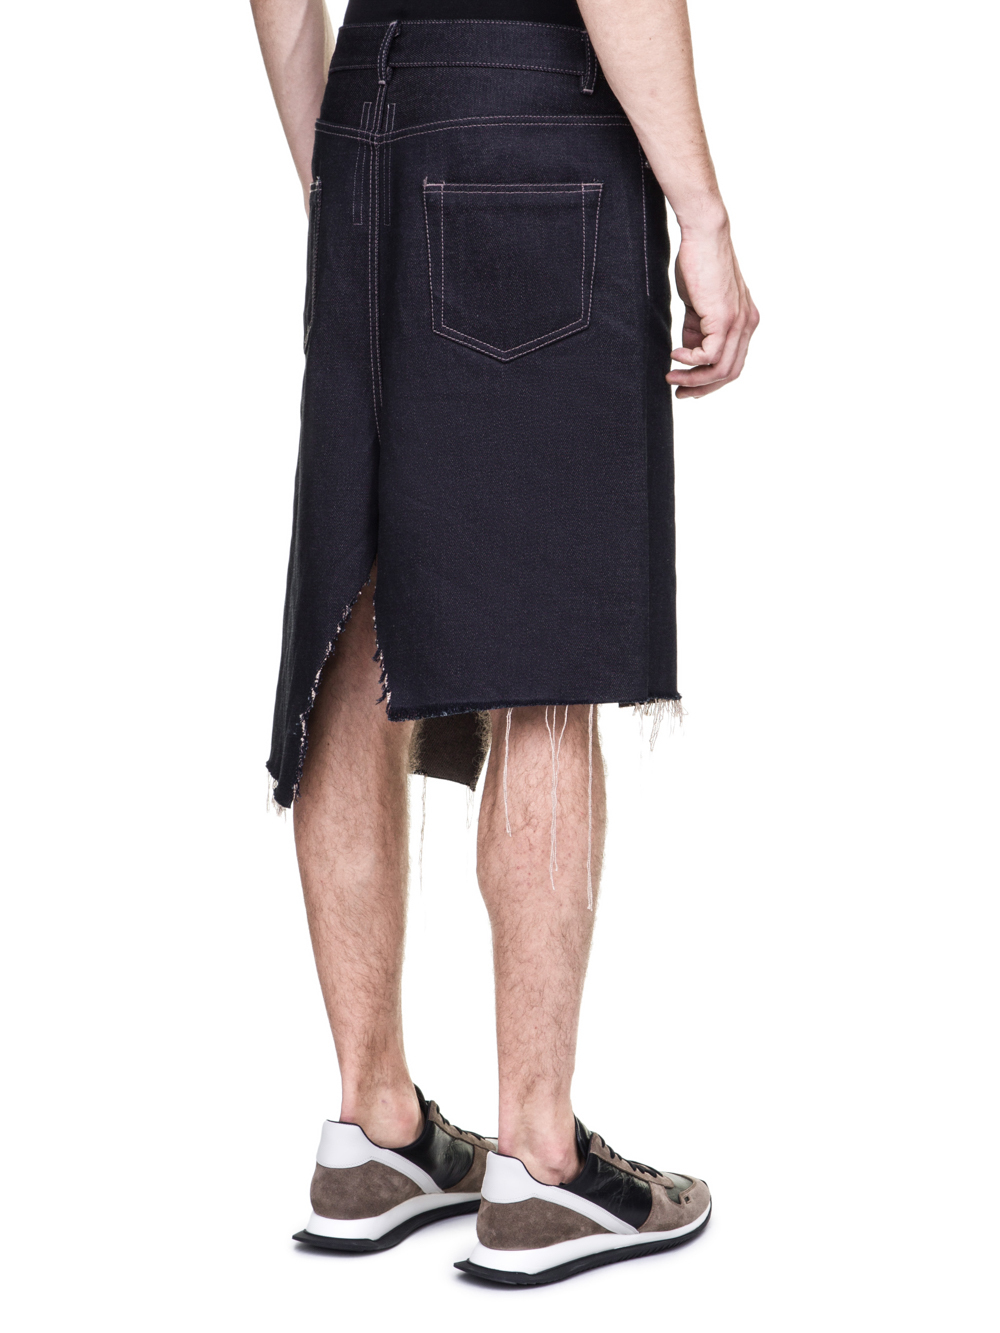 RICK OWENS OFF-THE-RUNWAY COLLAPSE SKIRT IN 18OZ INDIGO DIRTY WEFT DENIM